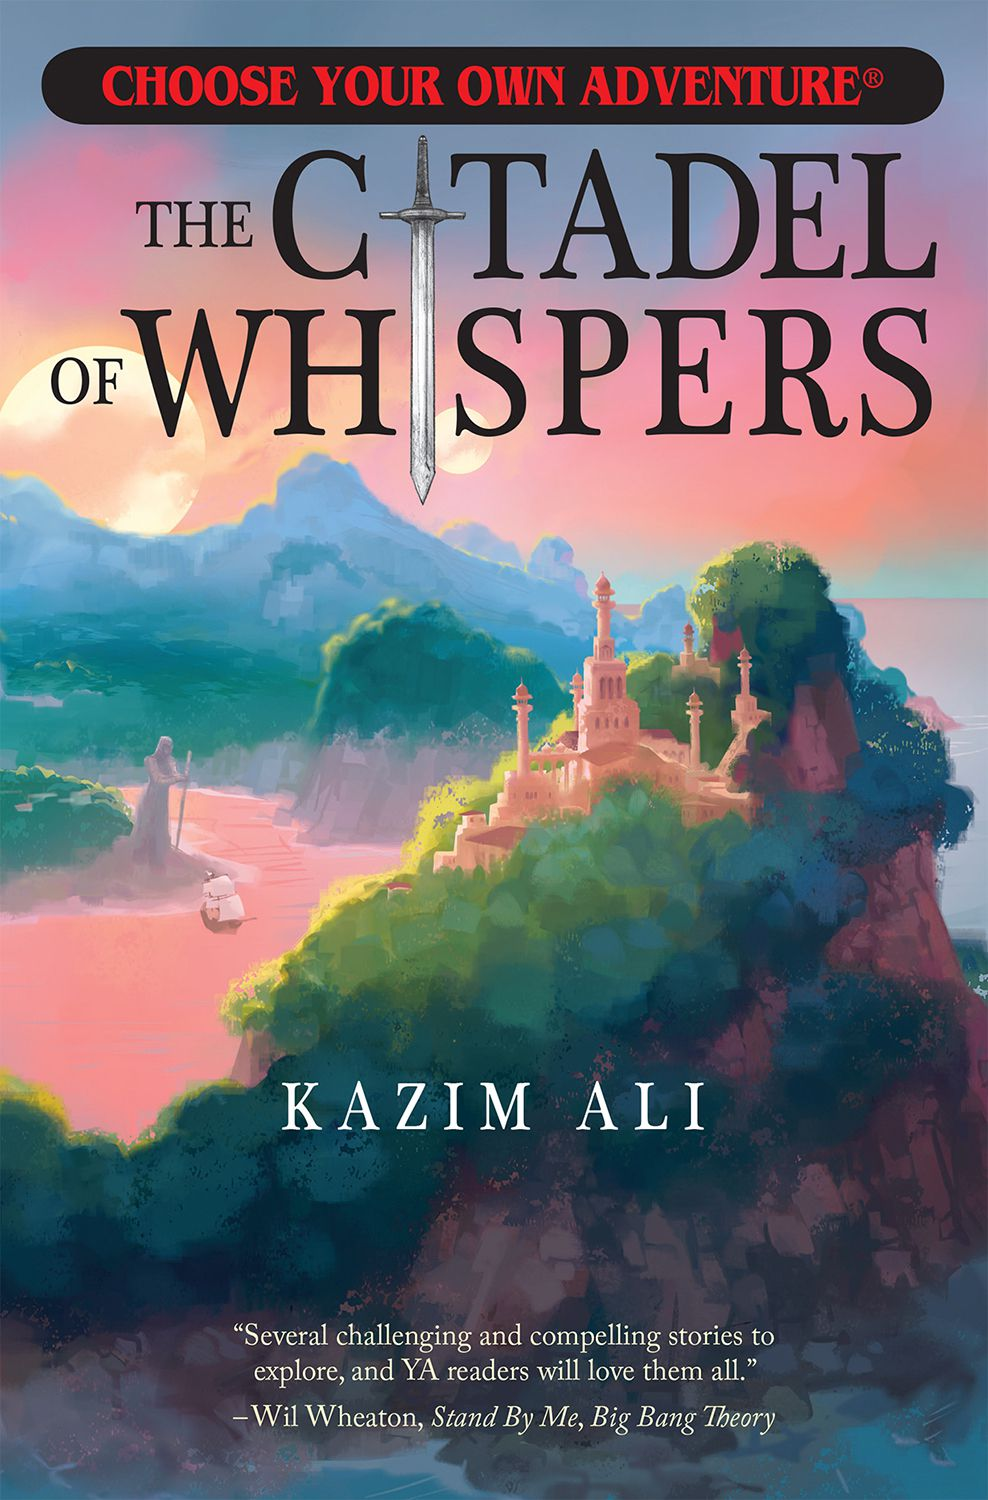 Book cover of The Citadel of Whispers by Kazim Ali